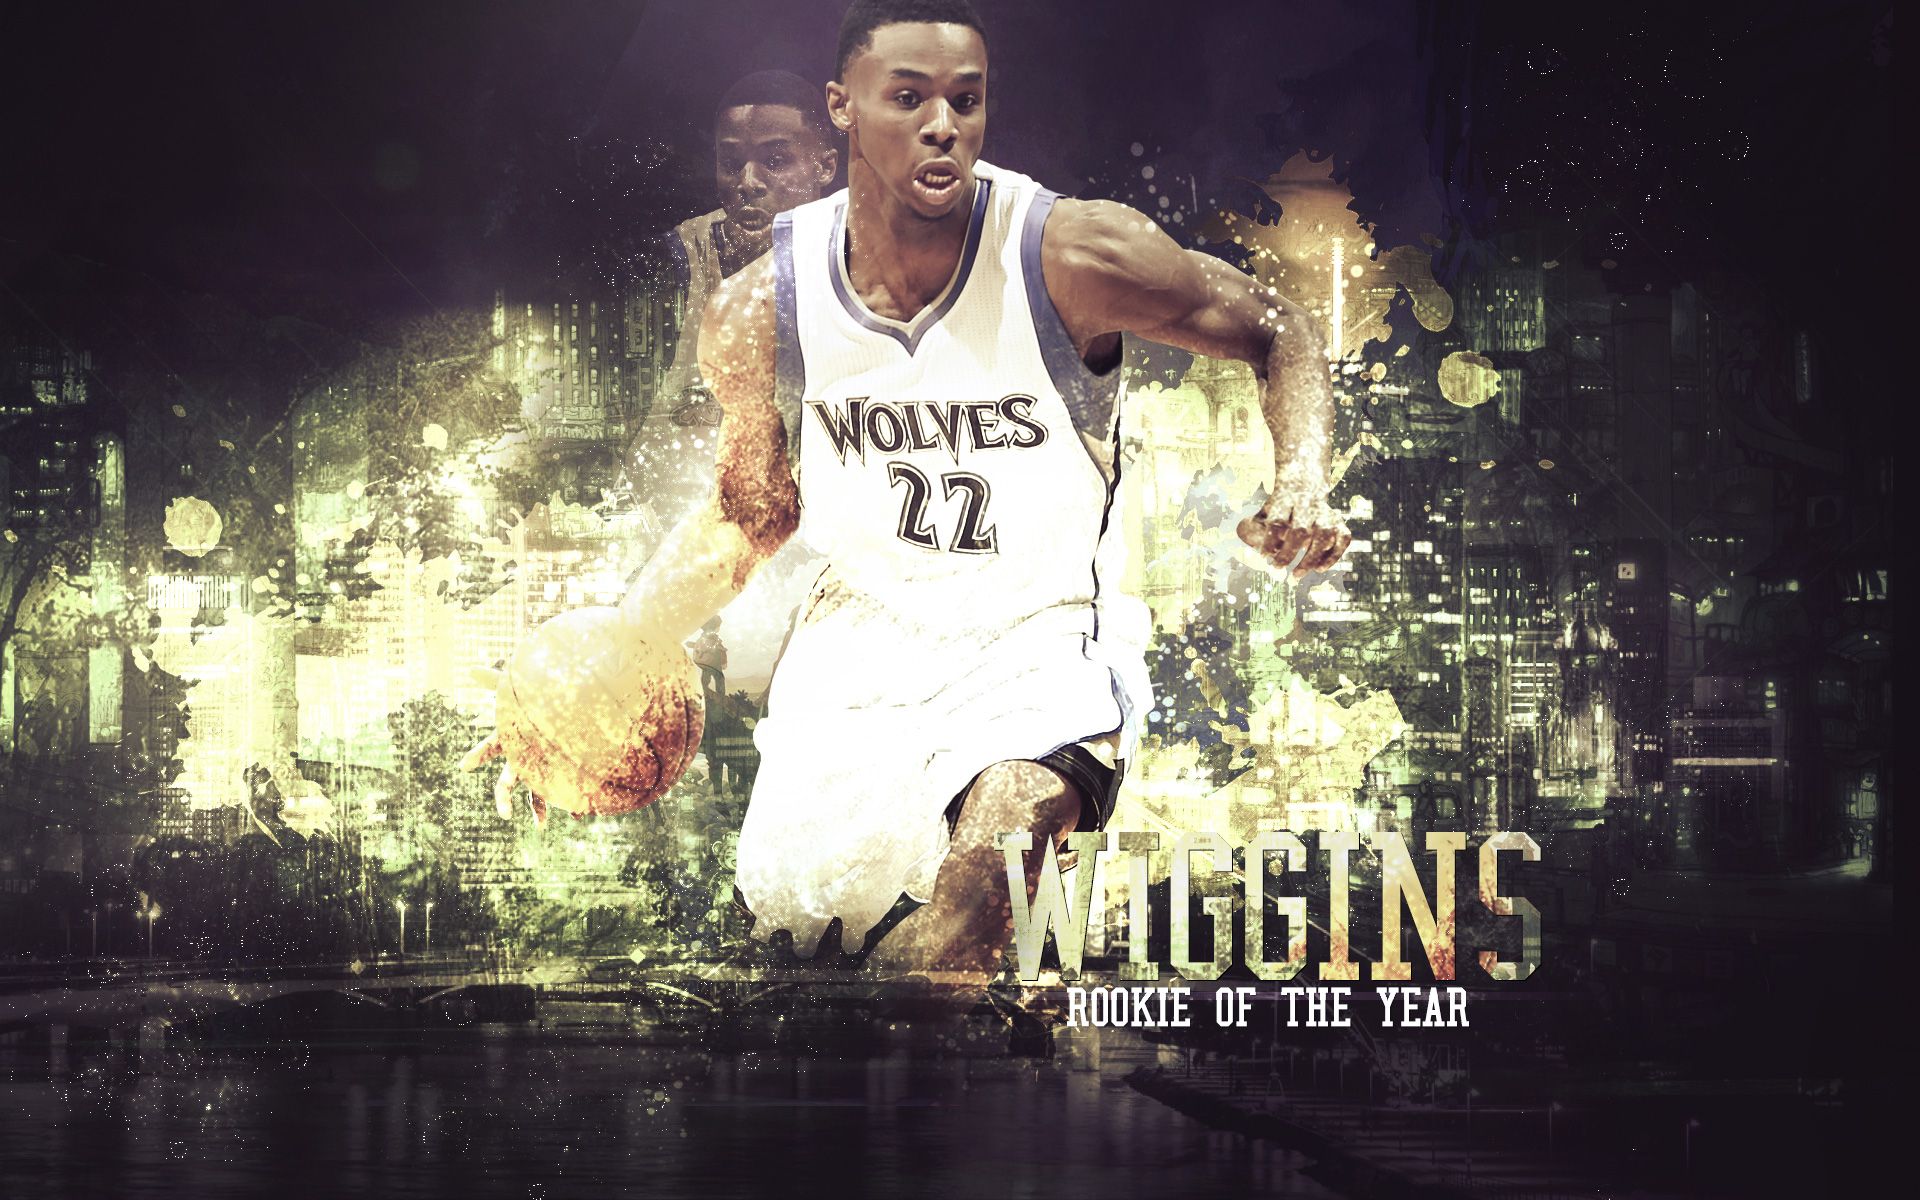 Andrew Wiggins 2015 ROTY 19201200 Wallpaper Basketball 1920x1200